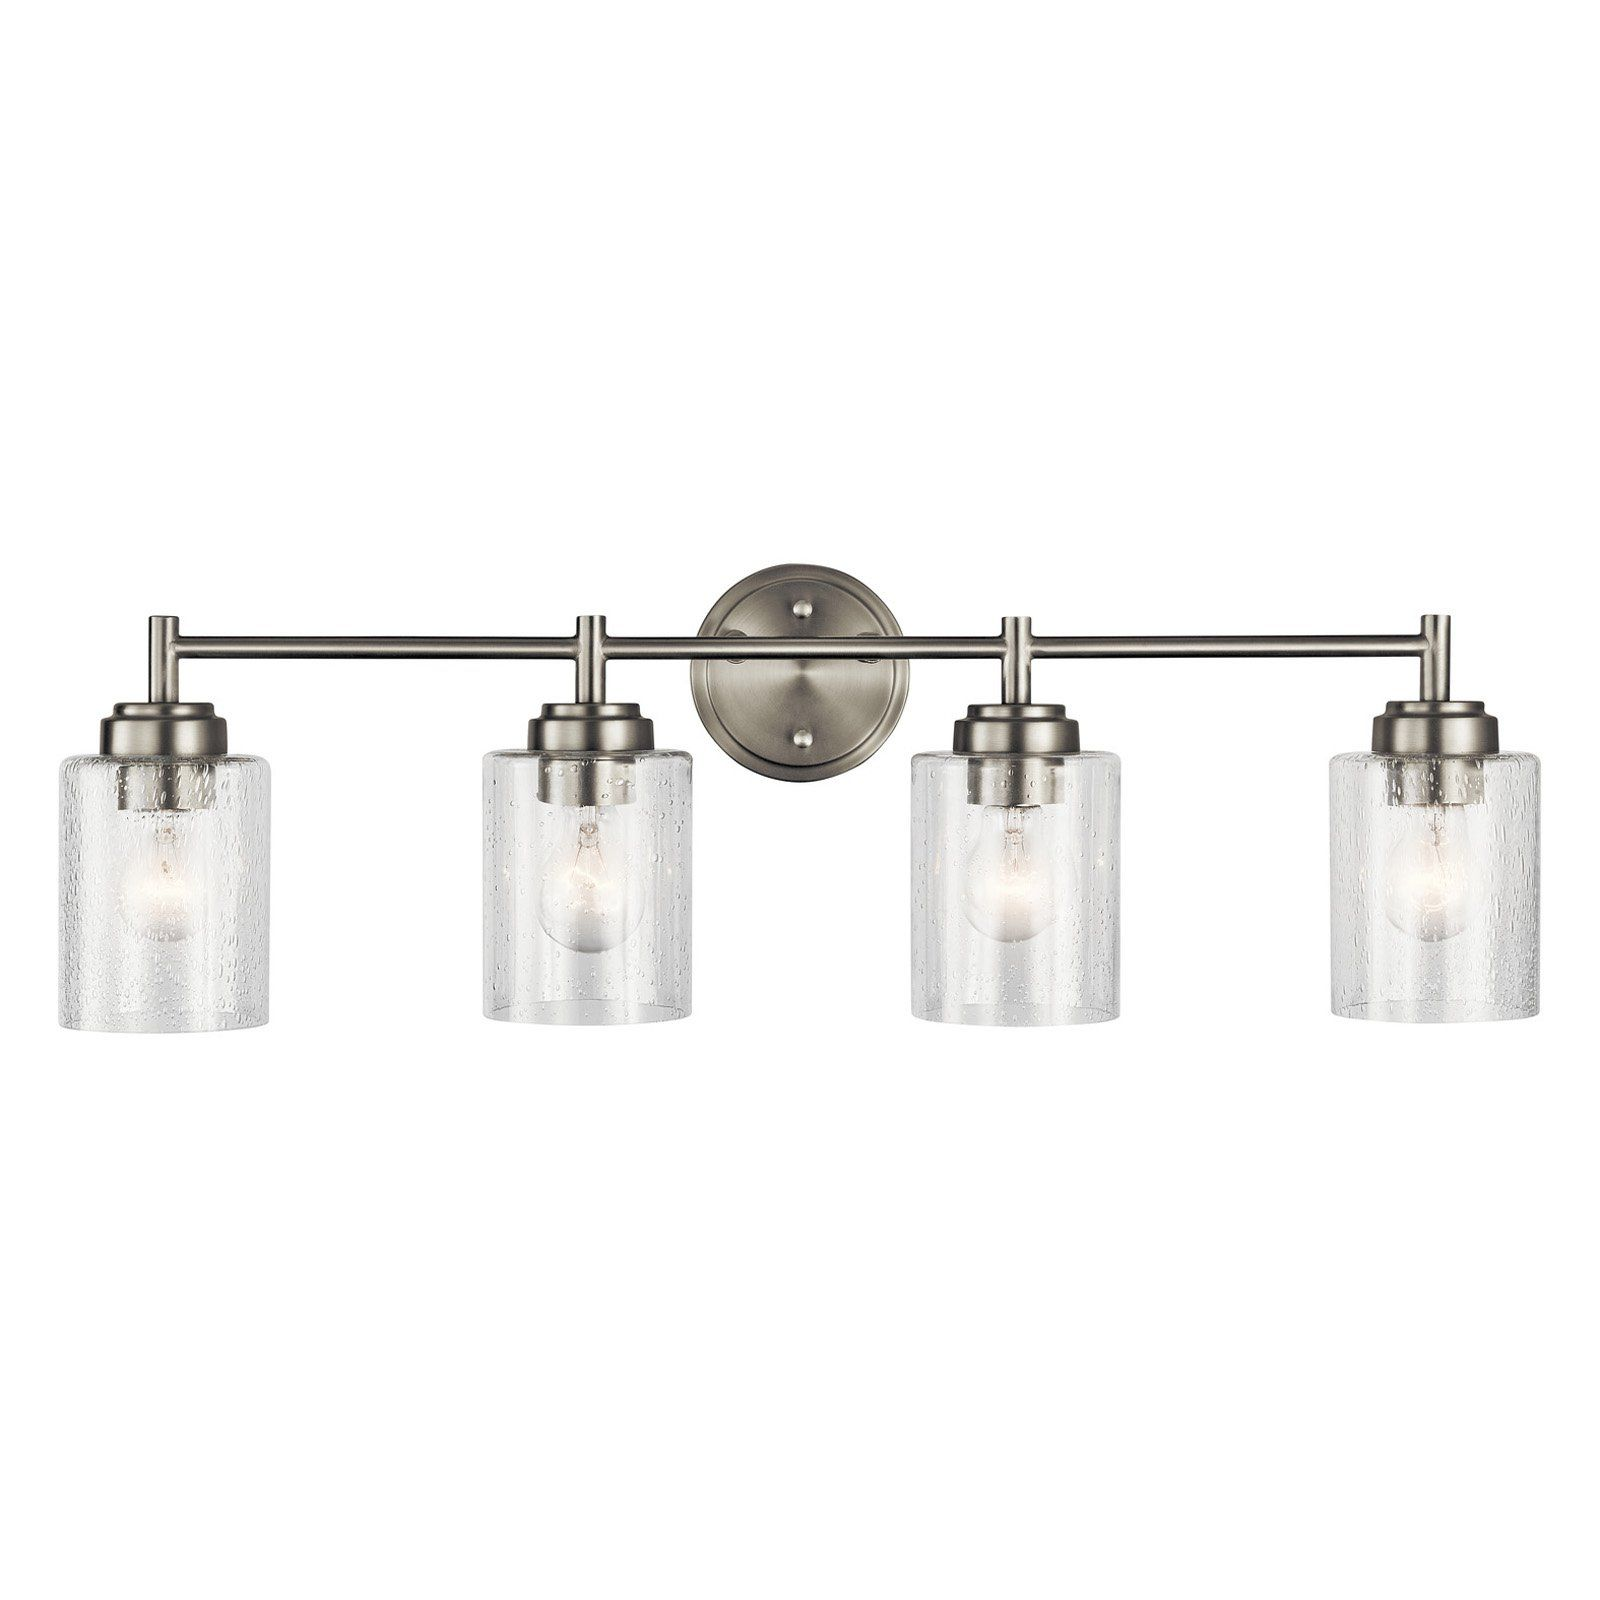 kichler winslow 45887 bathroom vanity light in 2019 products rh pinterest com